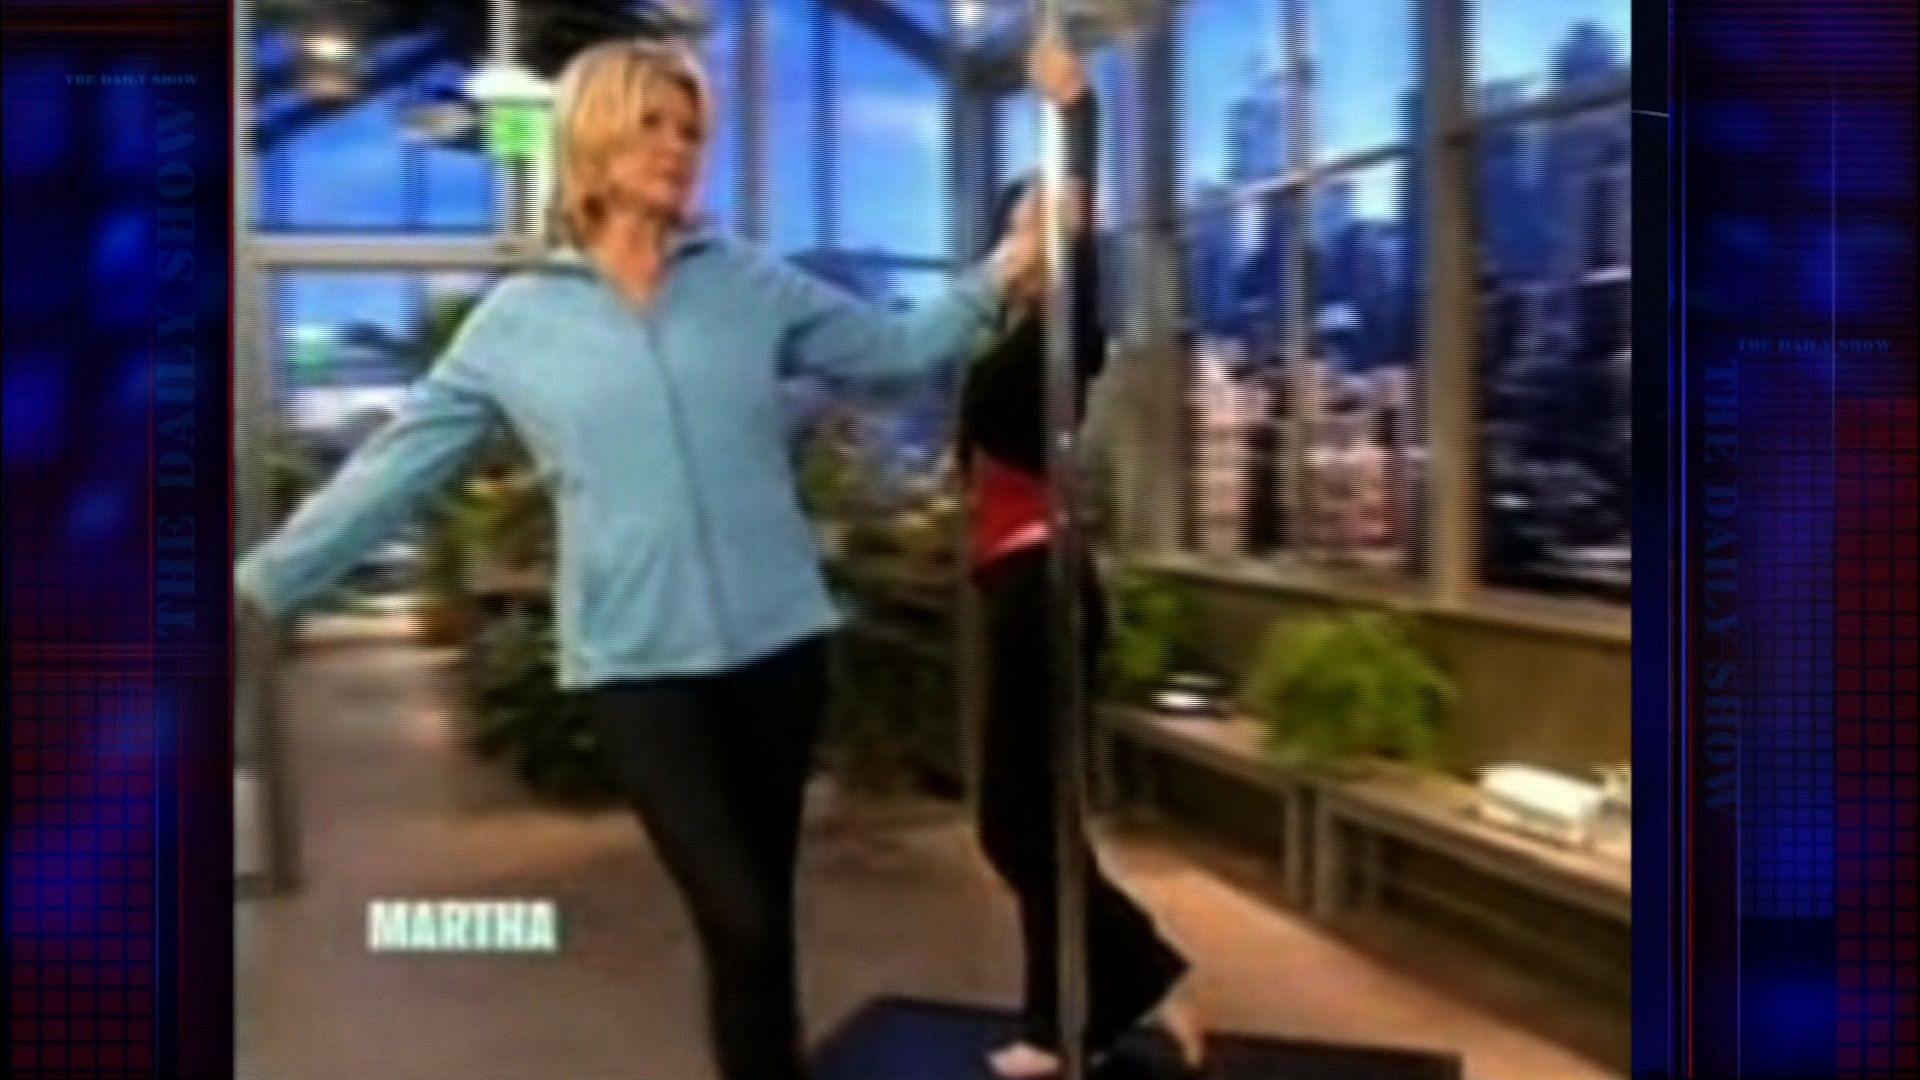 Martha stewart stripper pole